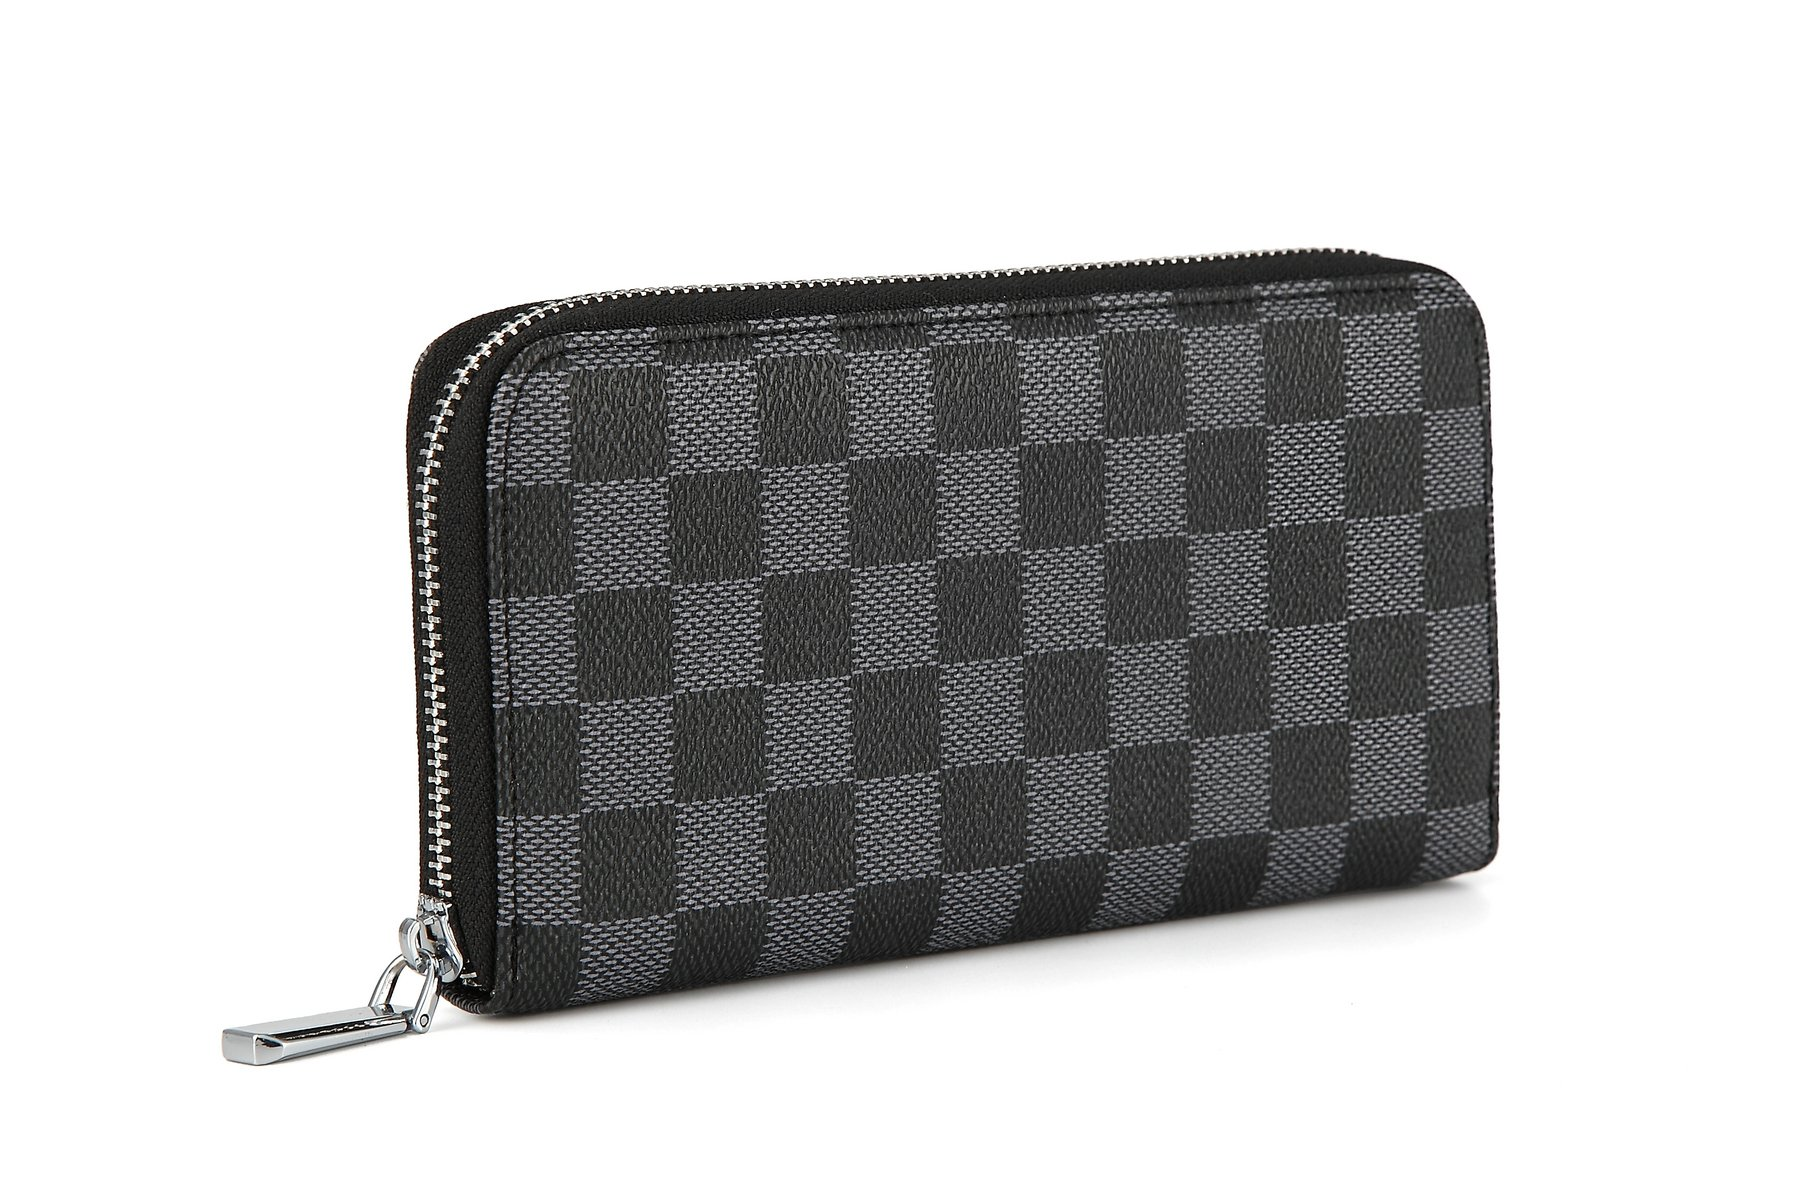 Daisy Rose Women's Checkered Zip Around Wallet and Phone Clutch - RFID Blocking with Card Holder Organizer -PU Vegan Leather, Black by Daisy Rose